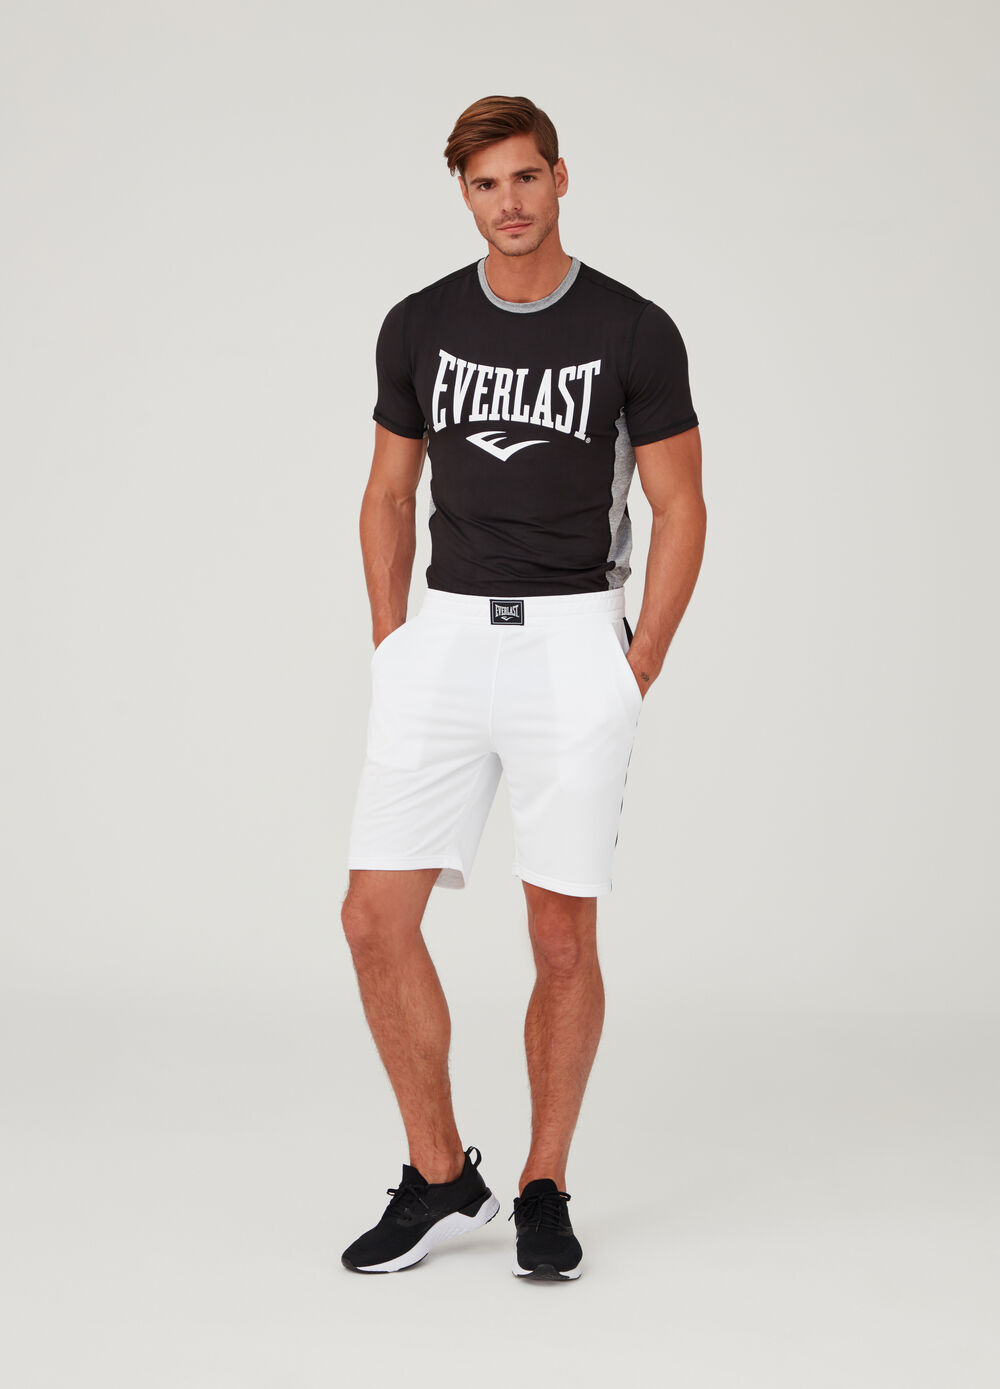 Everlast gym shorts with pockets